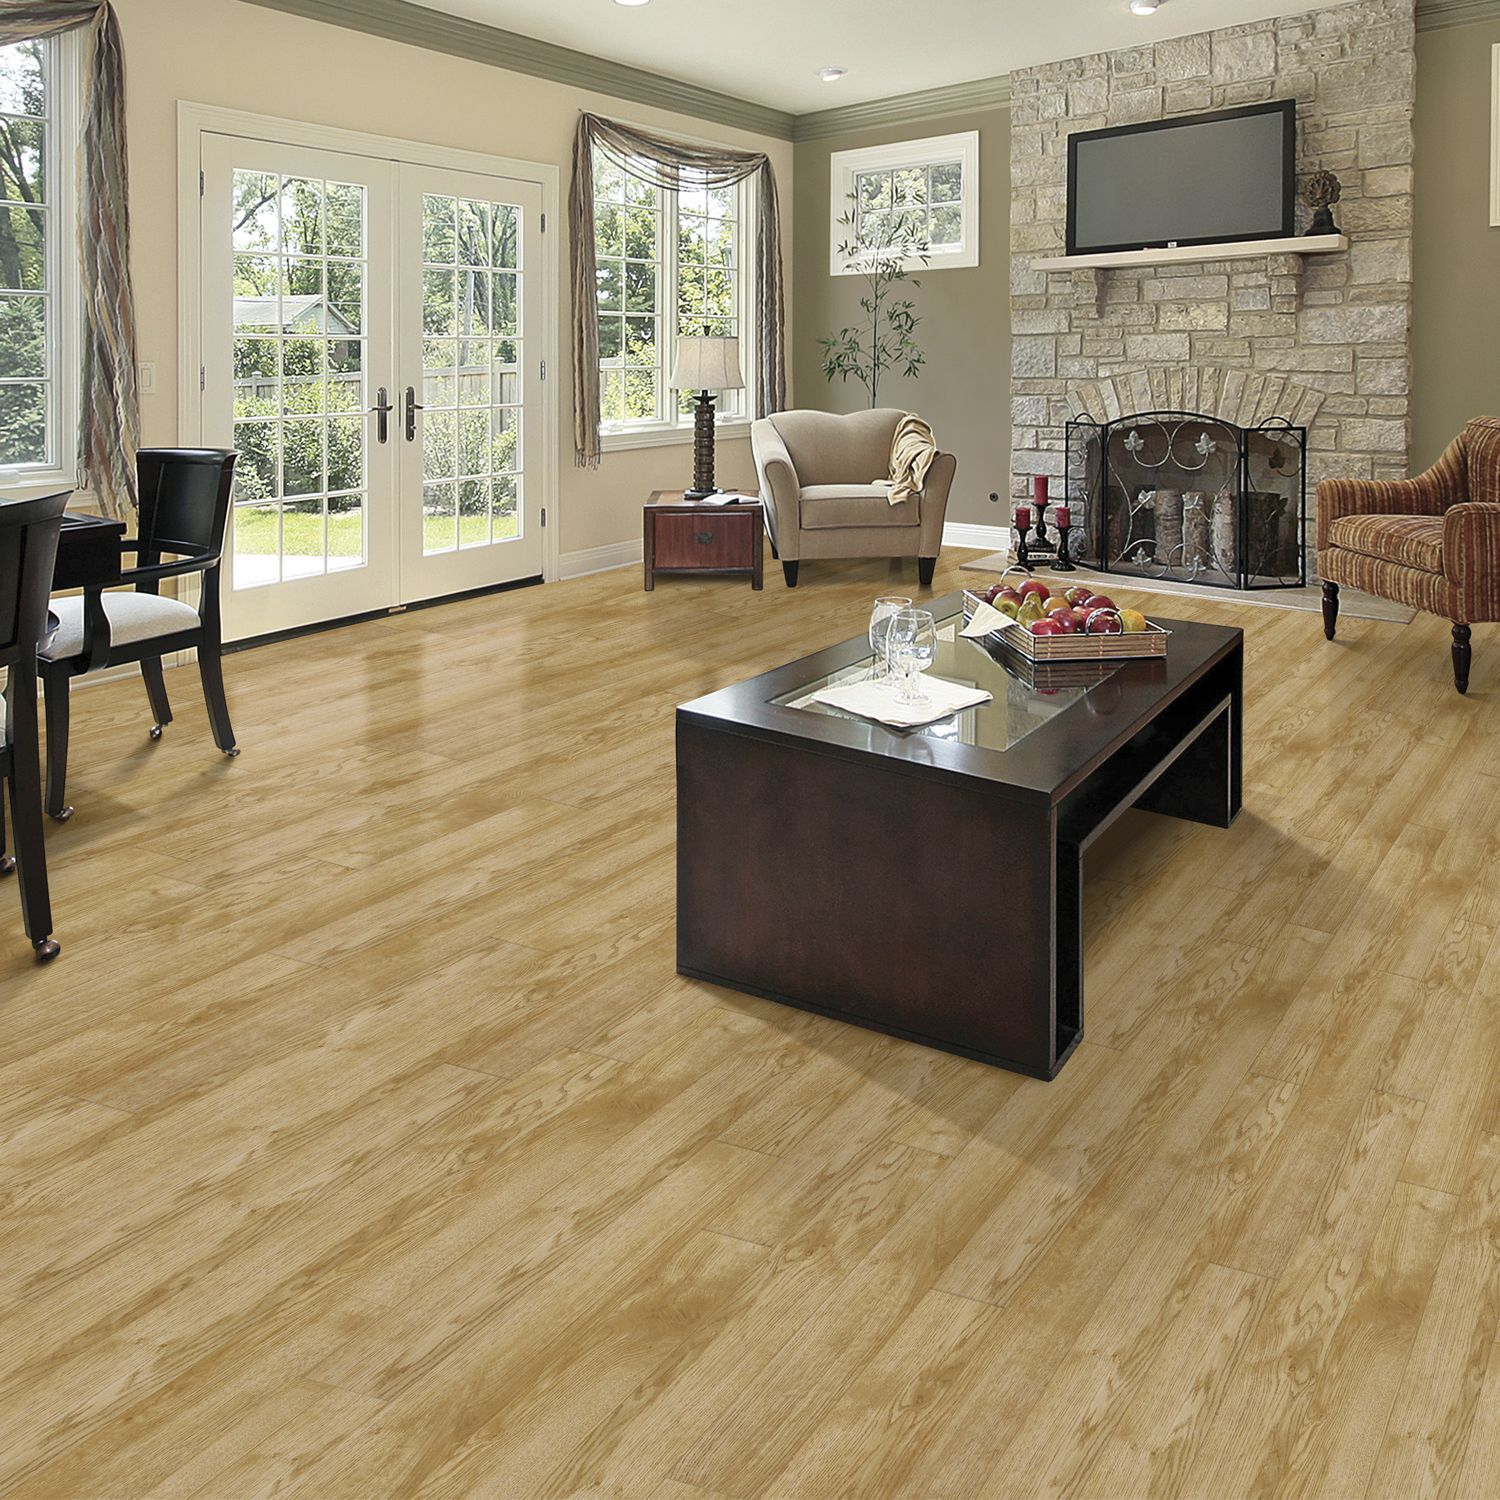 Select Surfaces Classic Oak Laminate Flooring Oak Laminate Flooring Flooring Laminate Flooring